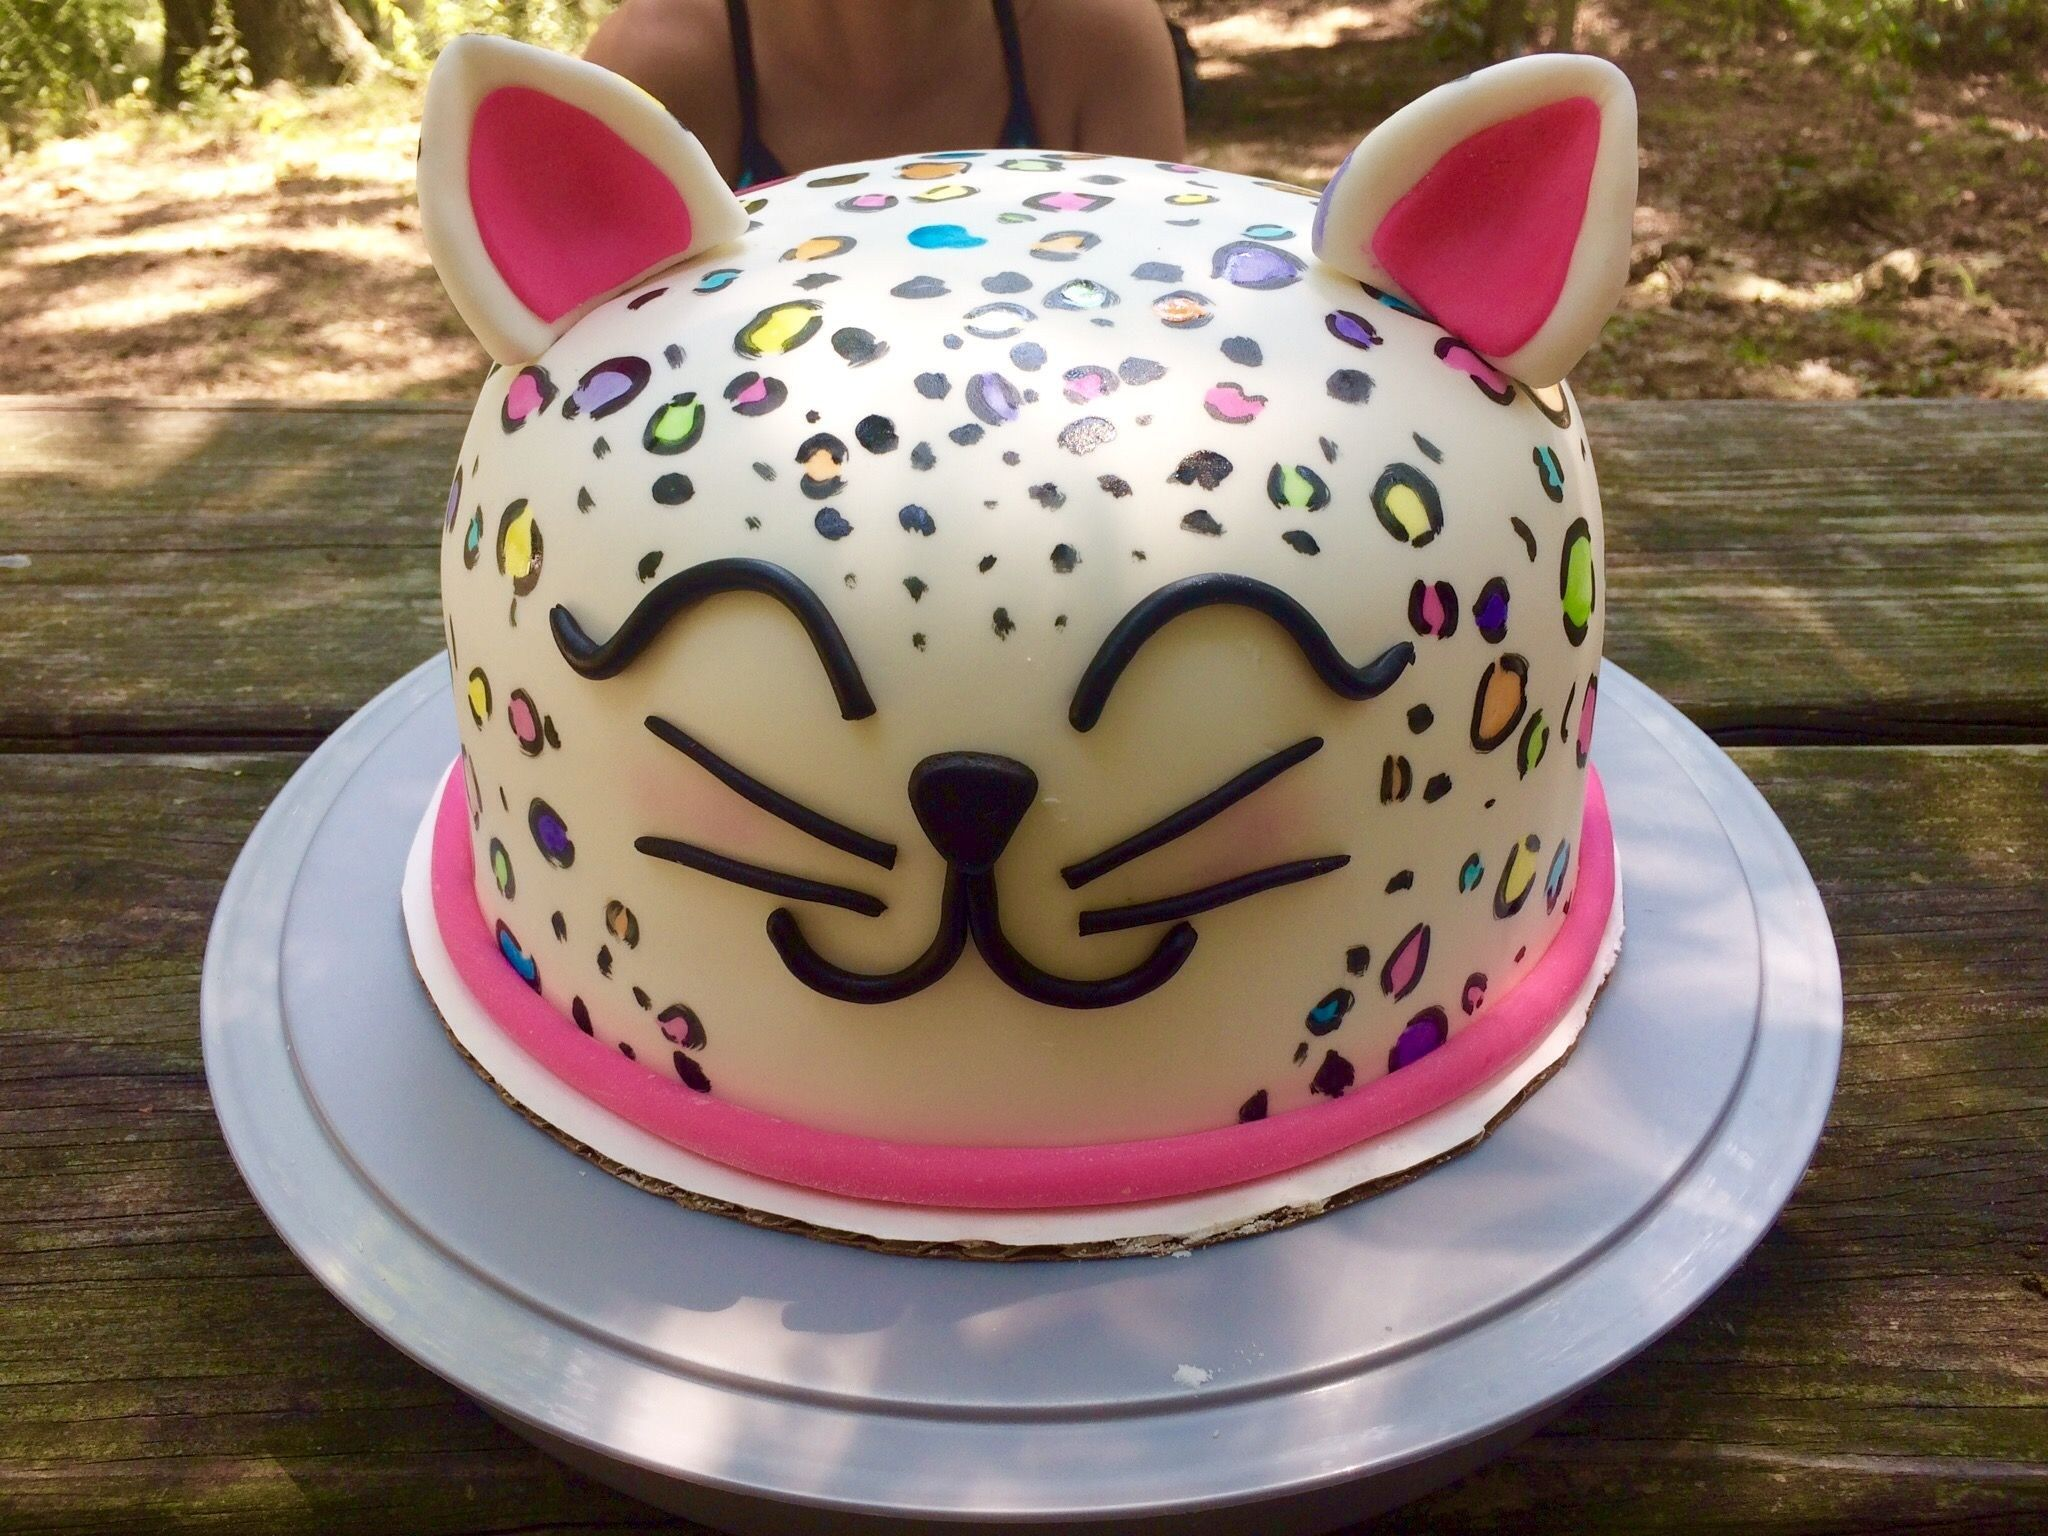 Pleasant 21 Best Image Of Leopard Birthday Cake With Images Cheetah Personalised Birthday Cards Petedlily Jamesorg